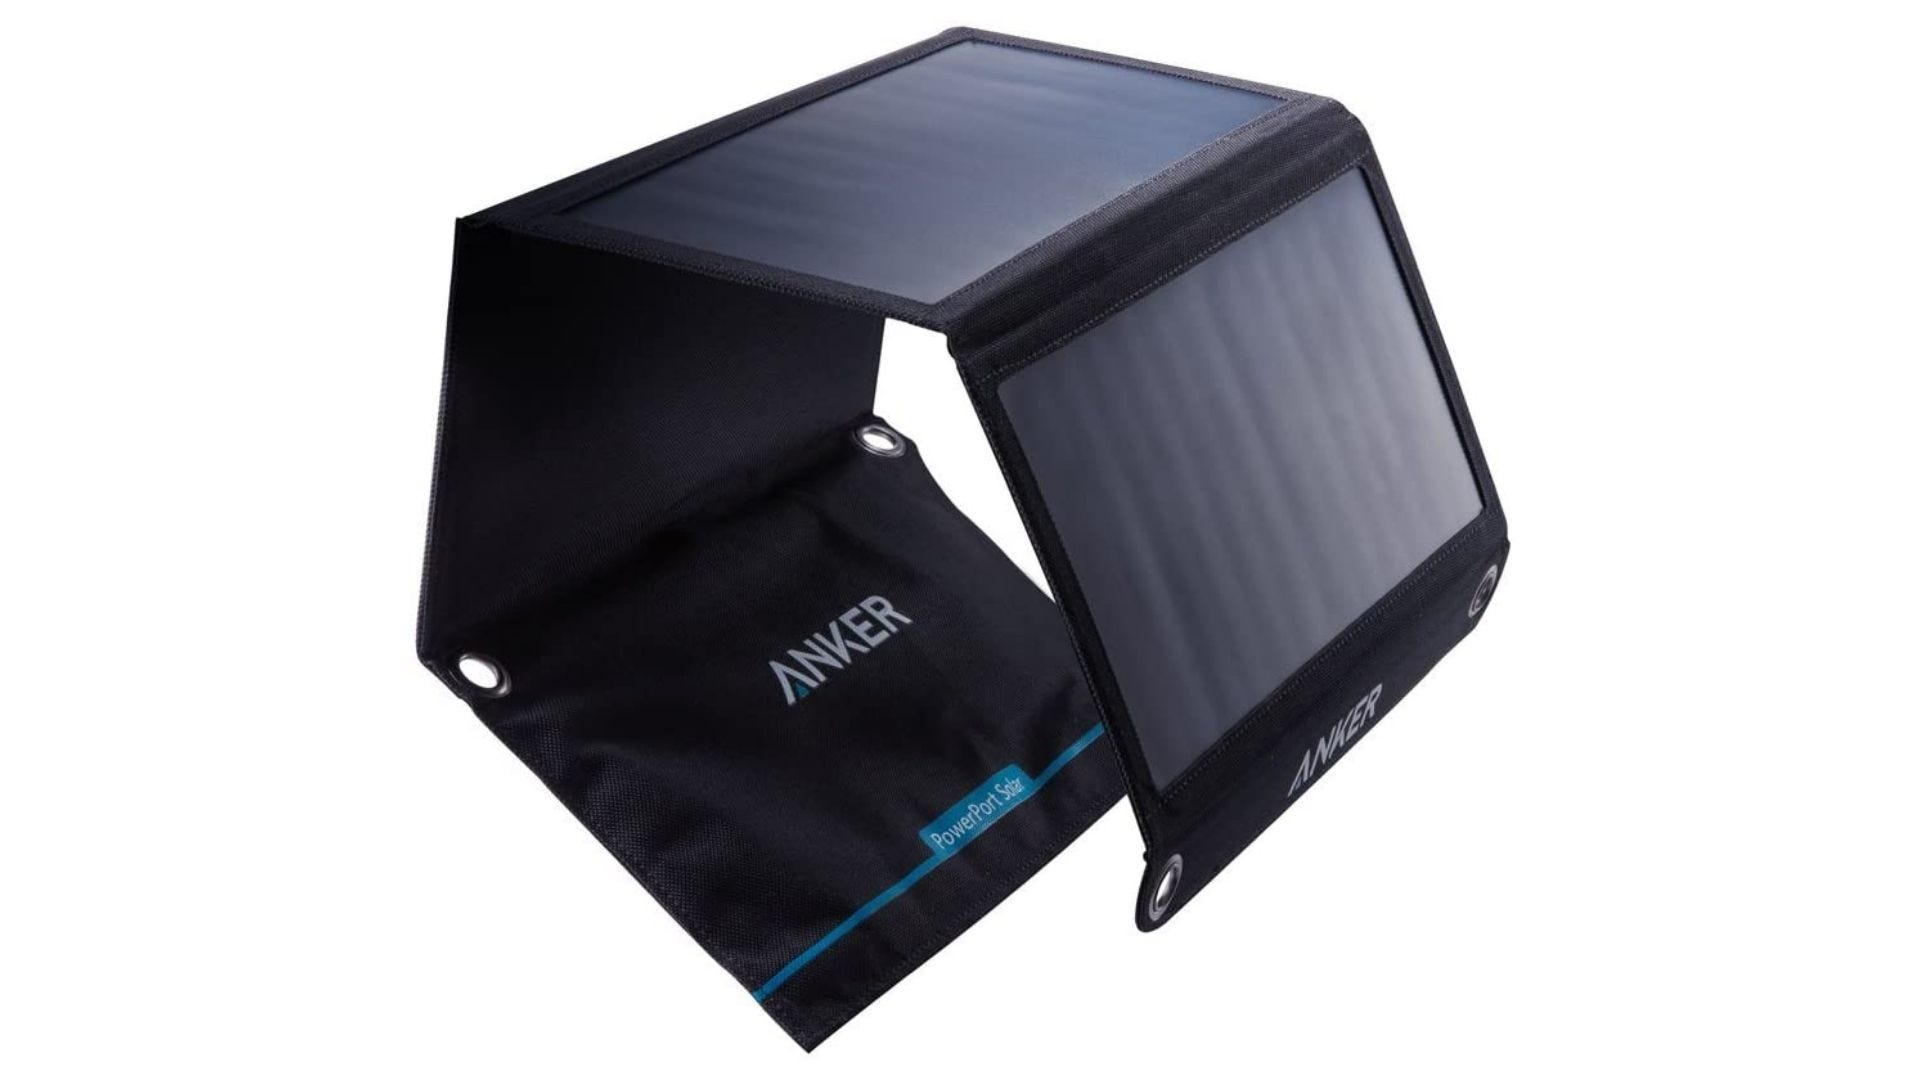 Anker 21W 2-Port USB Portable Solar Charger with Foldable Panel